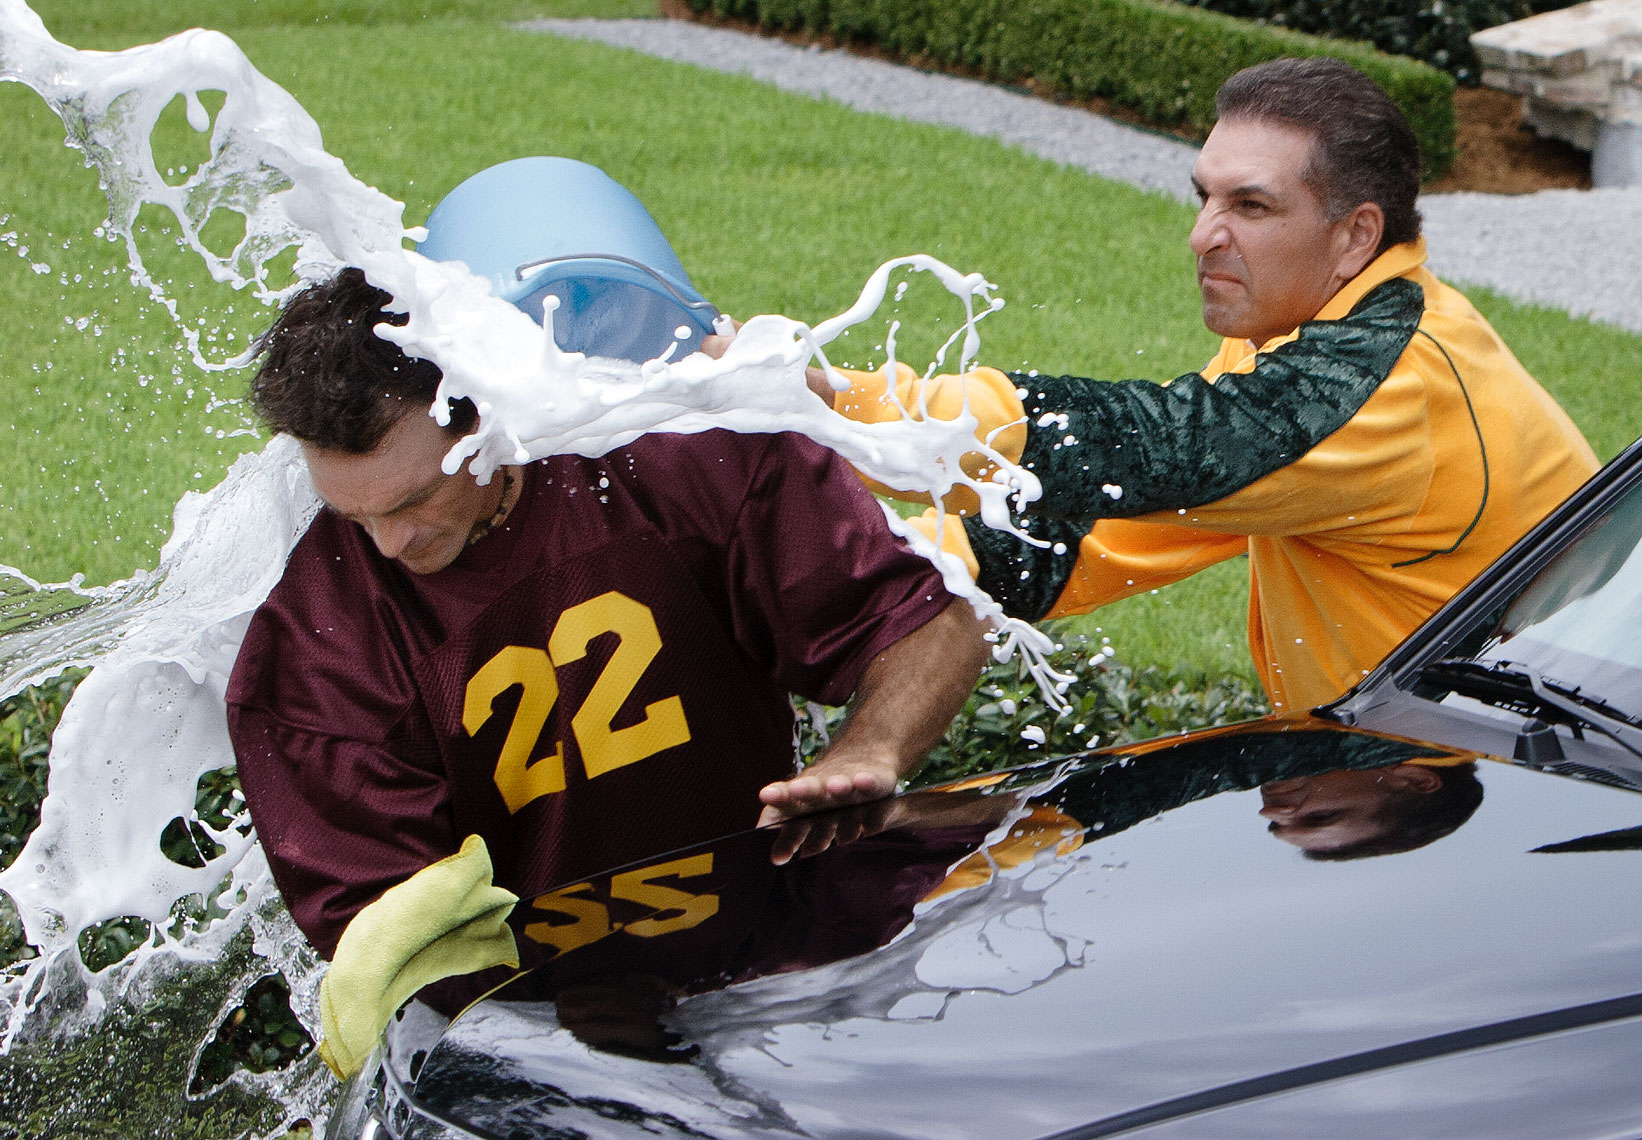 Doug Flutie & Vinnie Testaverde in Nissan commercial, car wash gone wrong